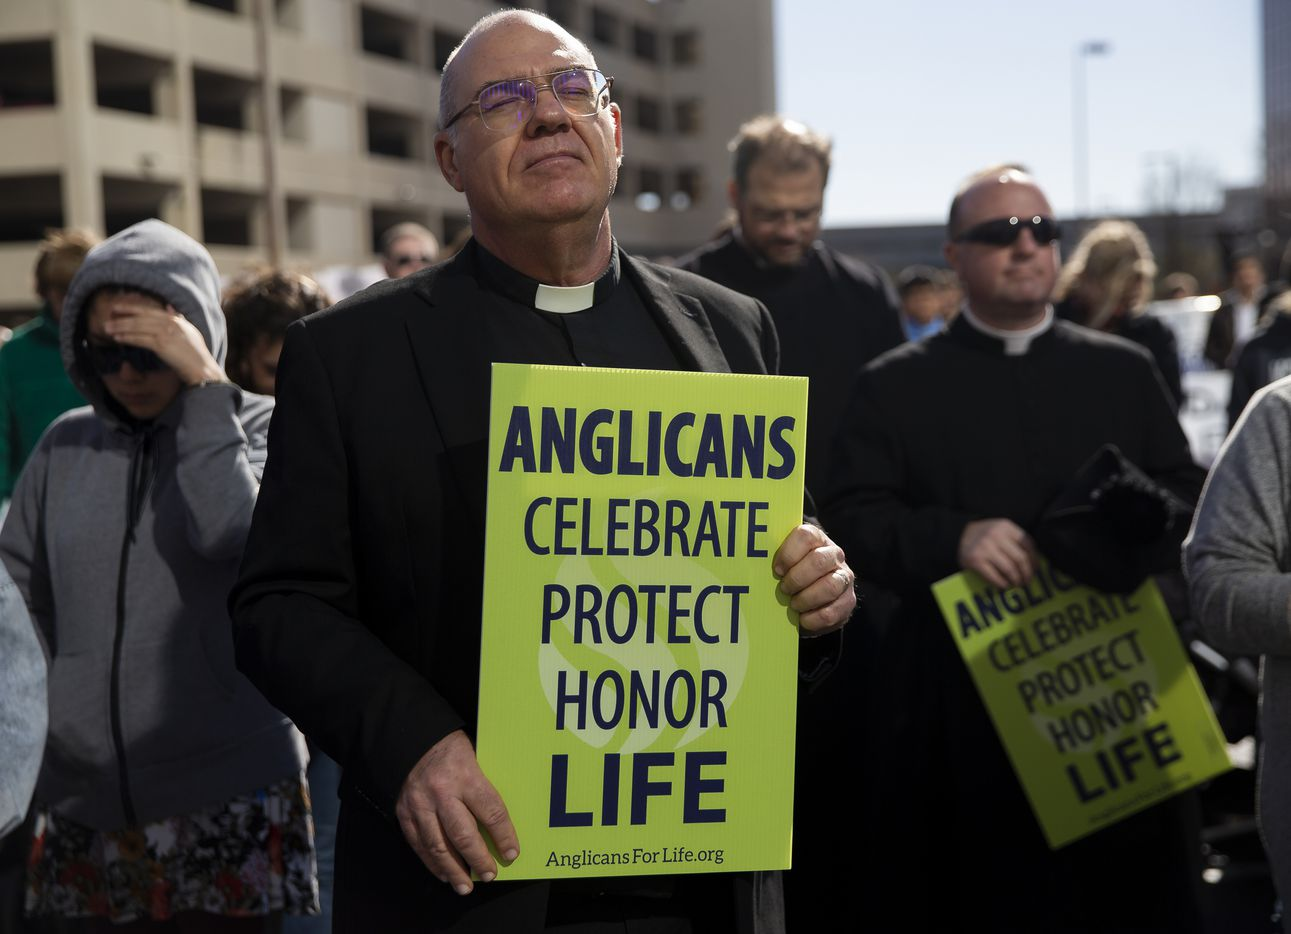 Father Adams (left) from Episcopal Diocese of Fort Worth prays after marching from the Cathedral Santuario de la Virgen de Guadalupe to the Earle Cabell Federal Courthouse during the North Texas March for Life on Saturday, Jan. 18, 2020.